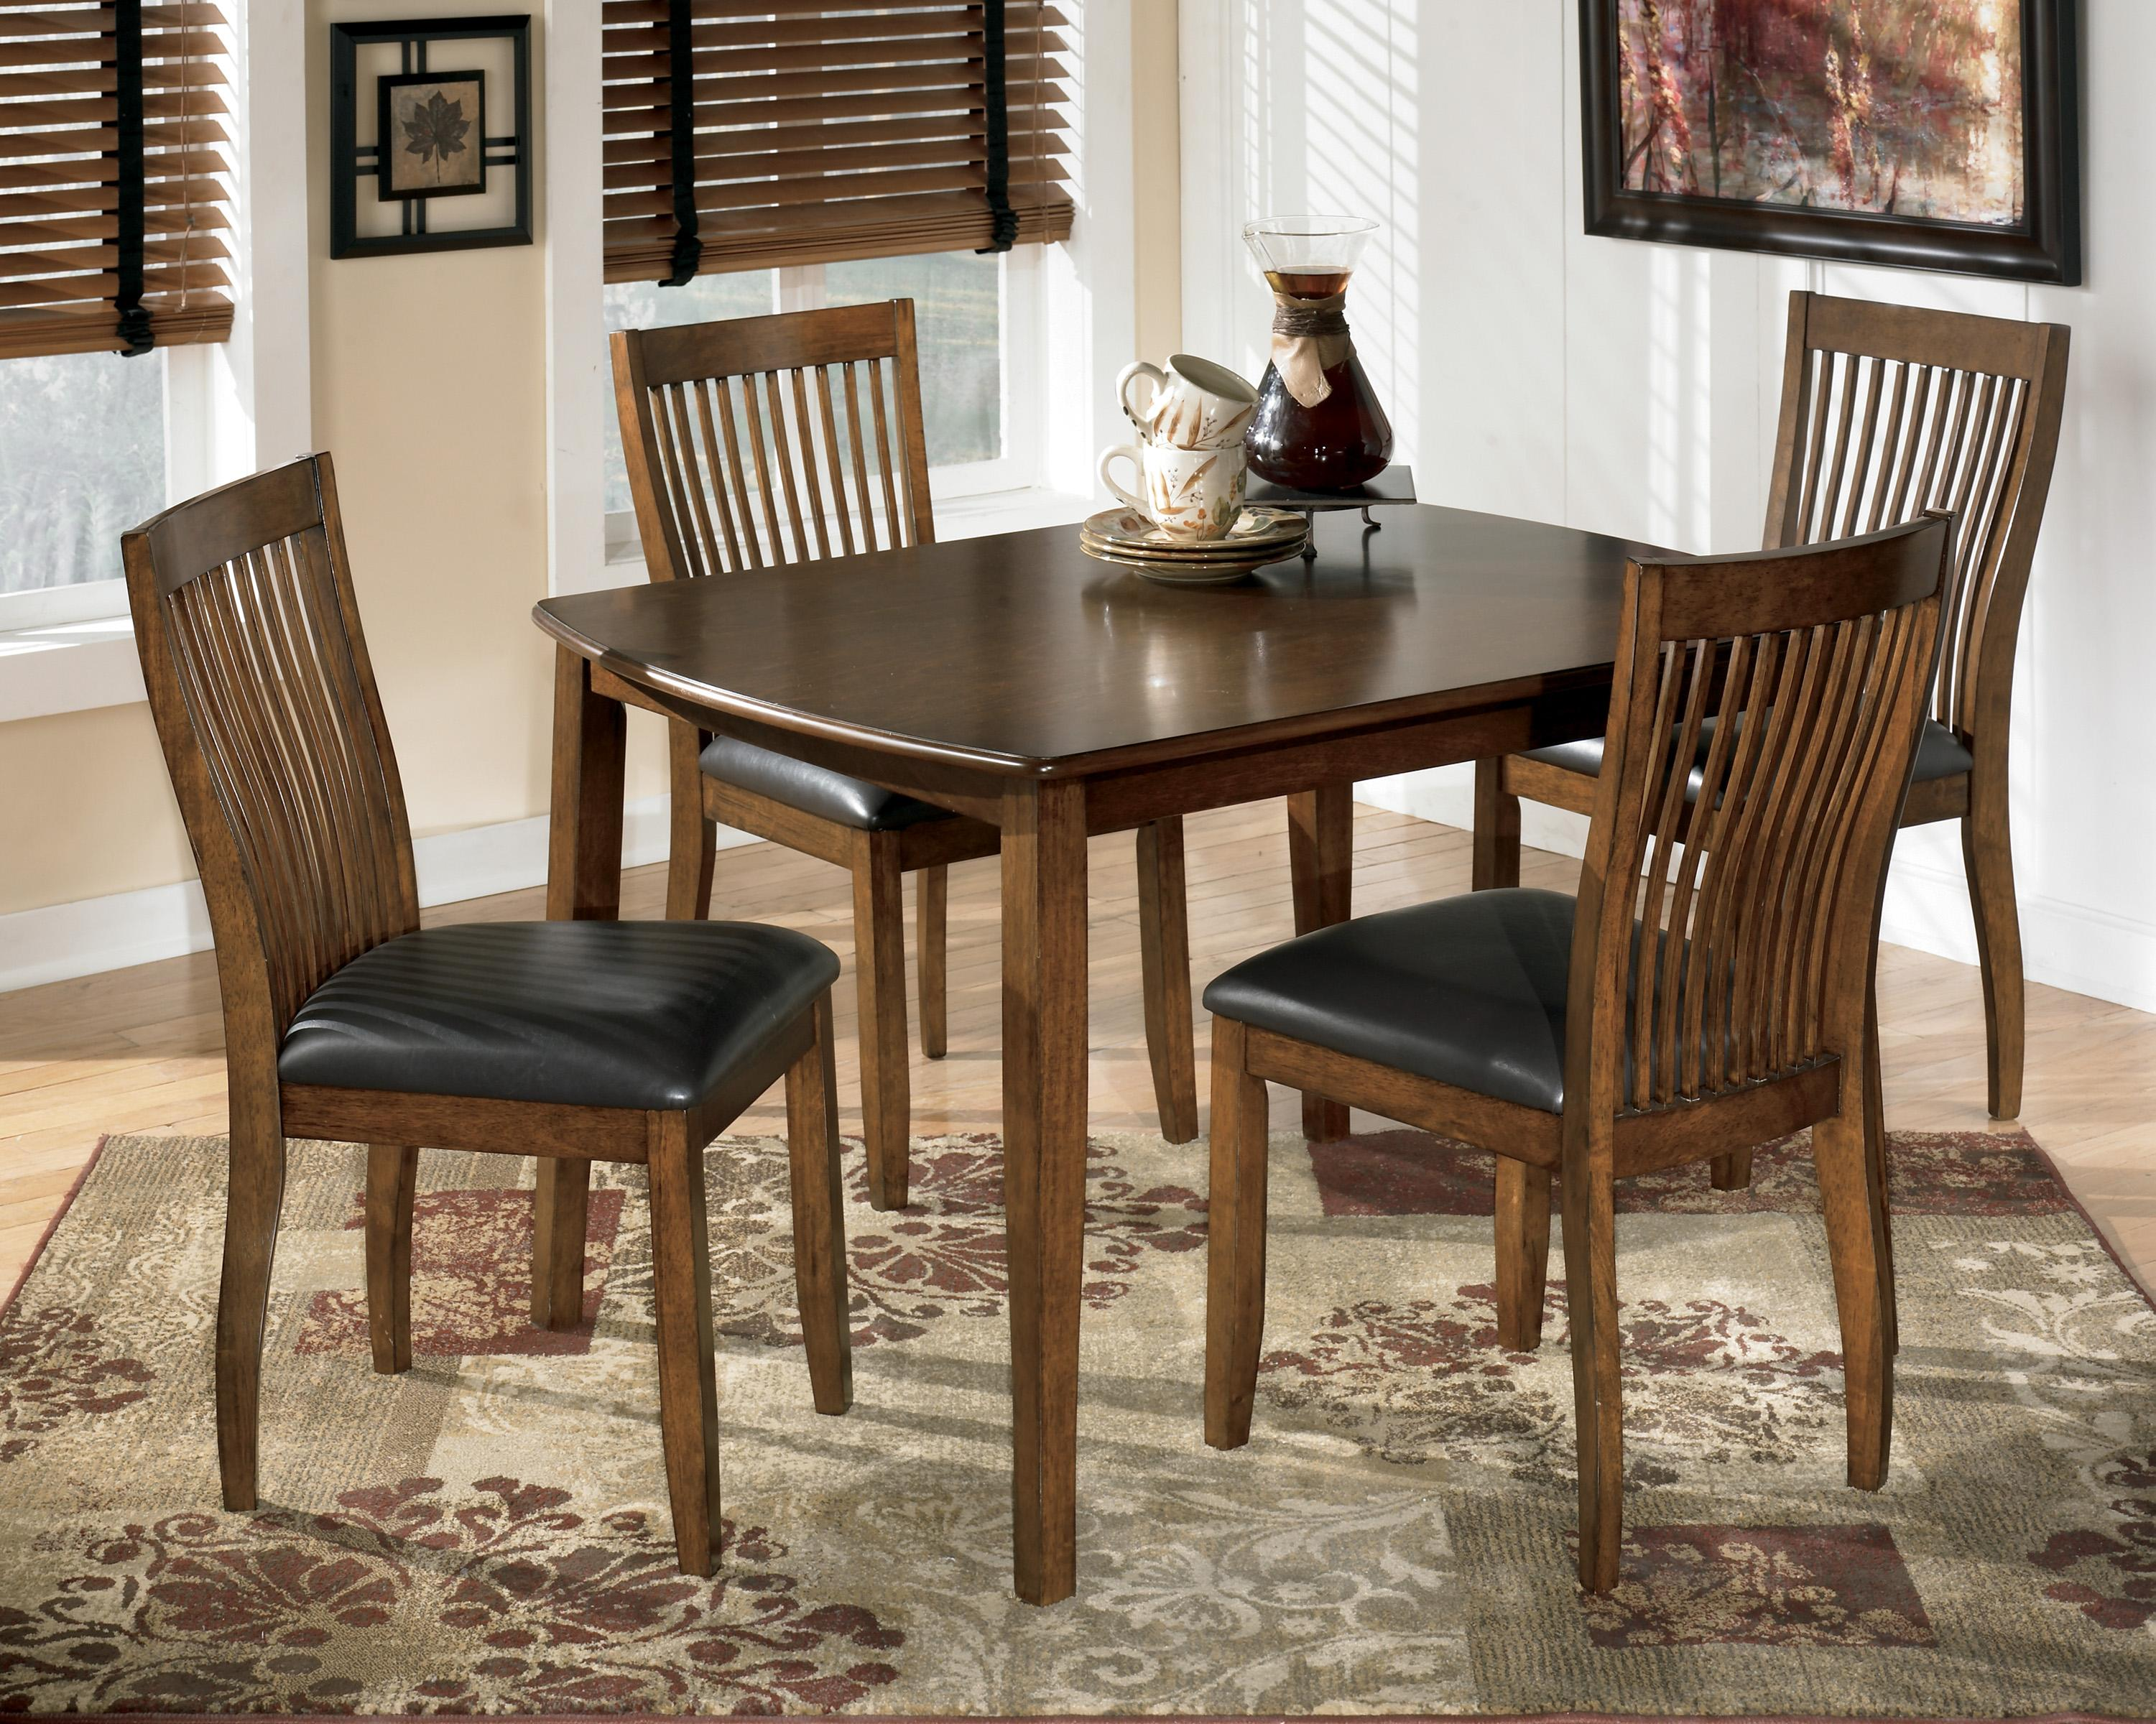 Dinning Room Table Set Signature Design By Ashley Stuman 5 Piece Rectangular Dining Room